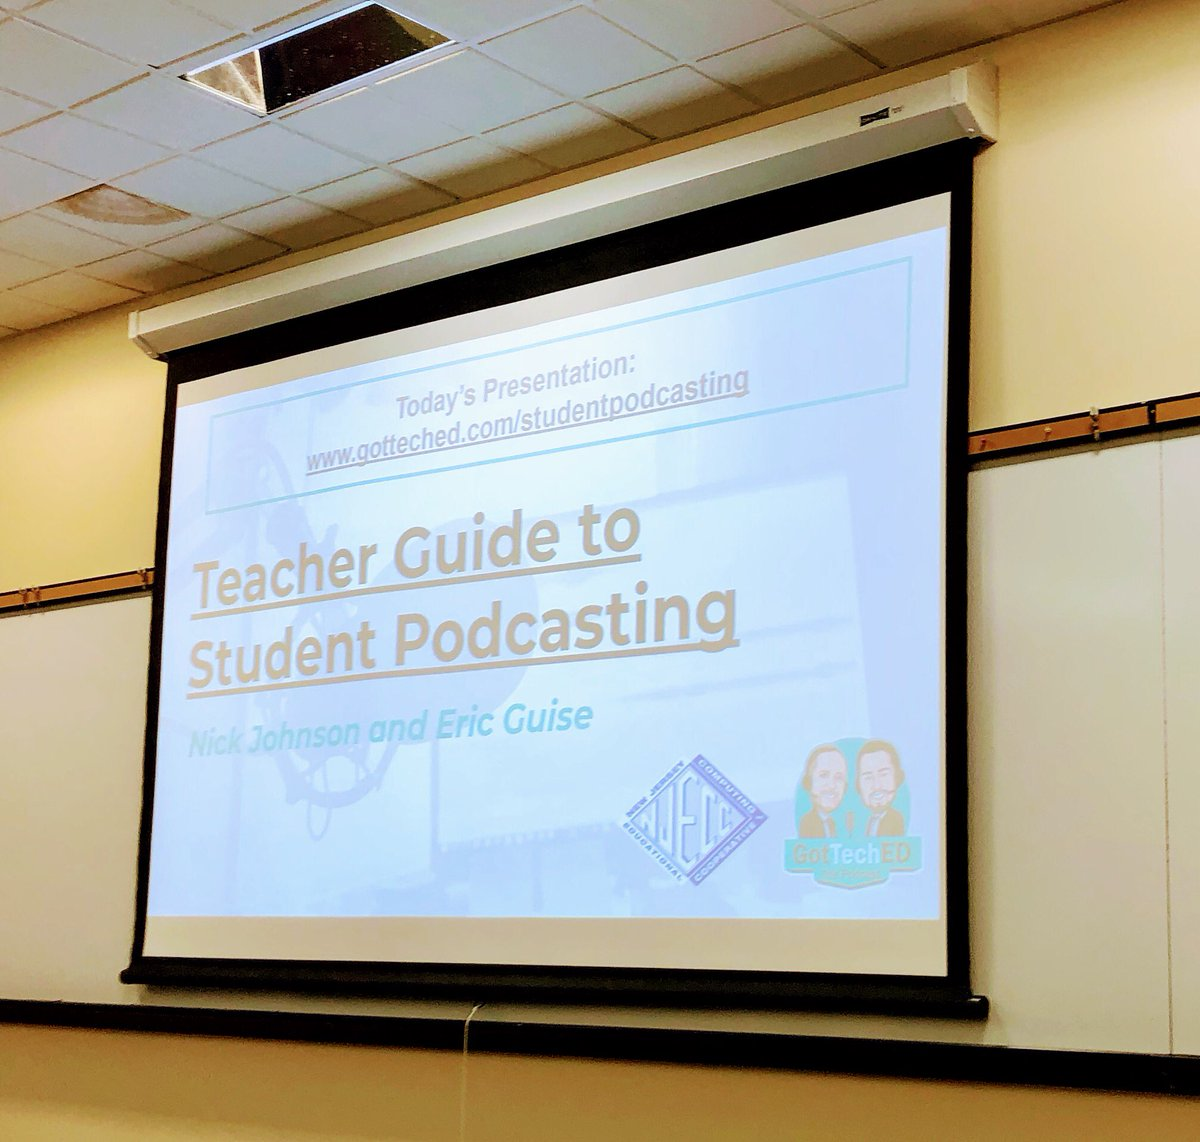 Looking forward to starting this at SBS!! @fse_sbs @NJECC #njecc2020 @SBS_Tigers<br>http://pic.twitter.com/q4xqaXySto